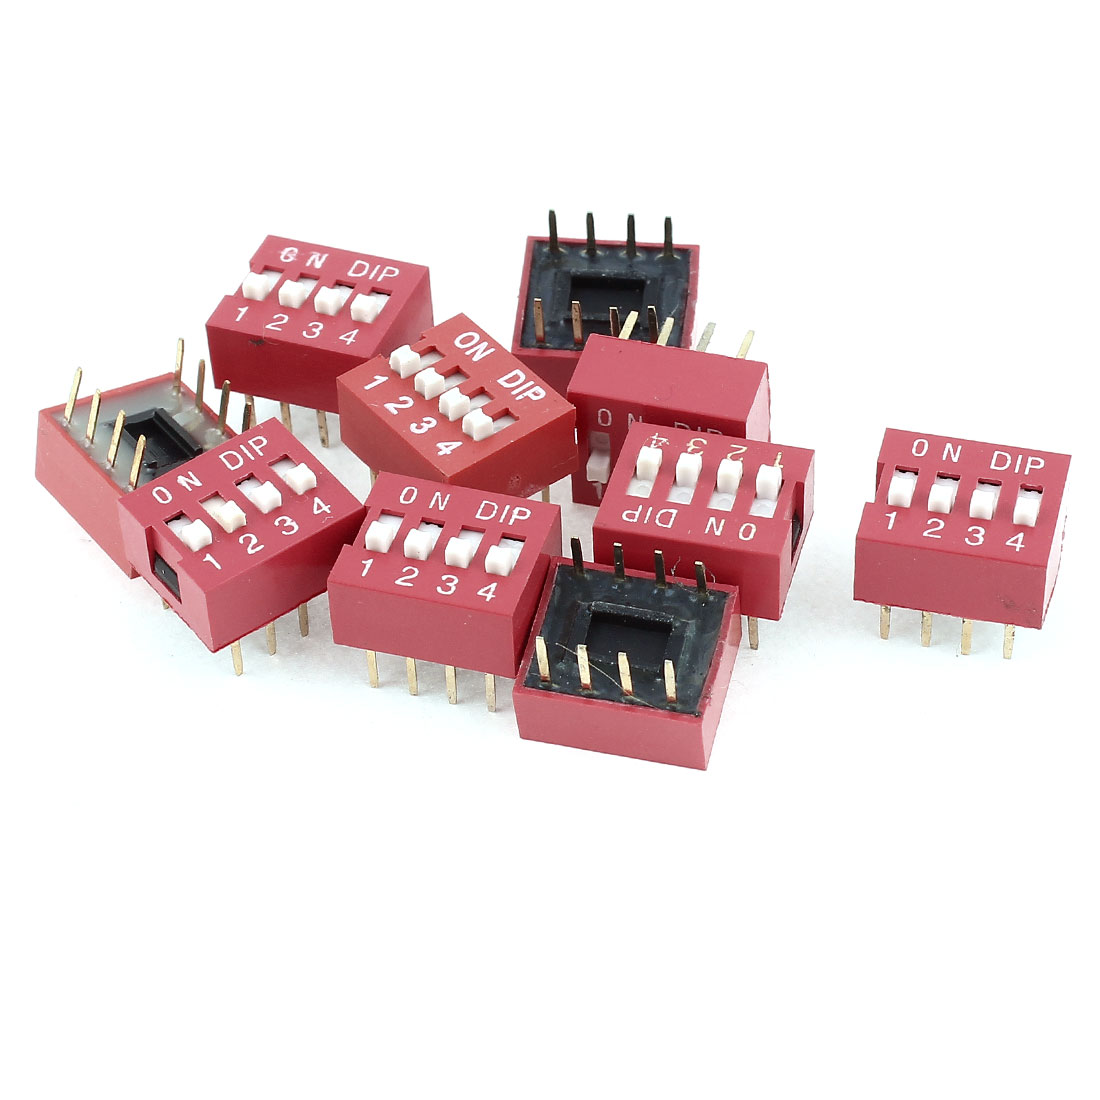 10 Pcs DIP Mount 2 Row 8 Pins 4 Positions Sliding Switch 2.54mm Pitch